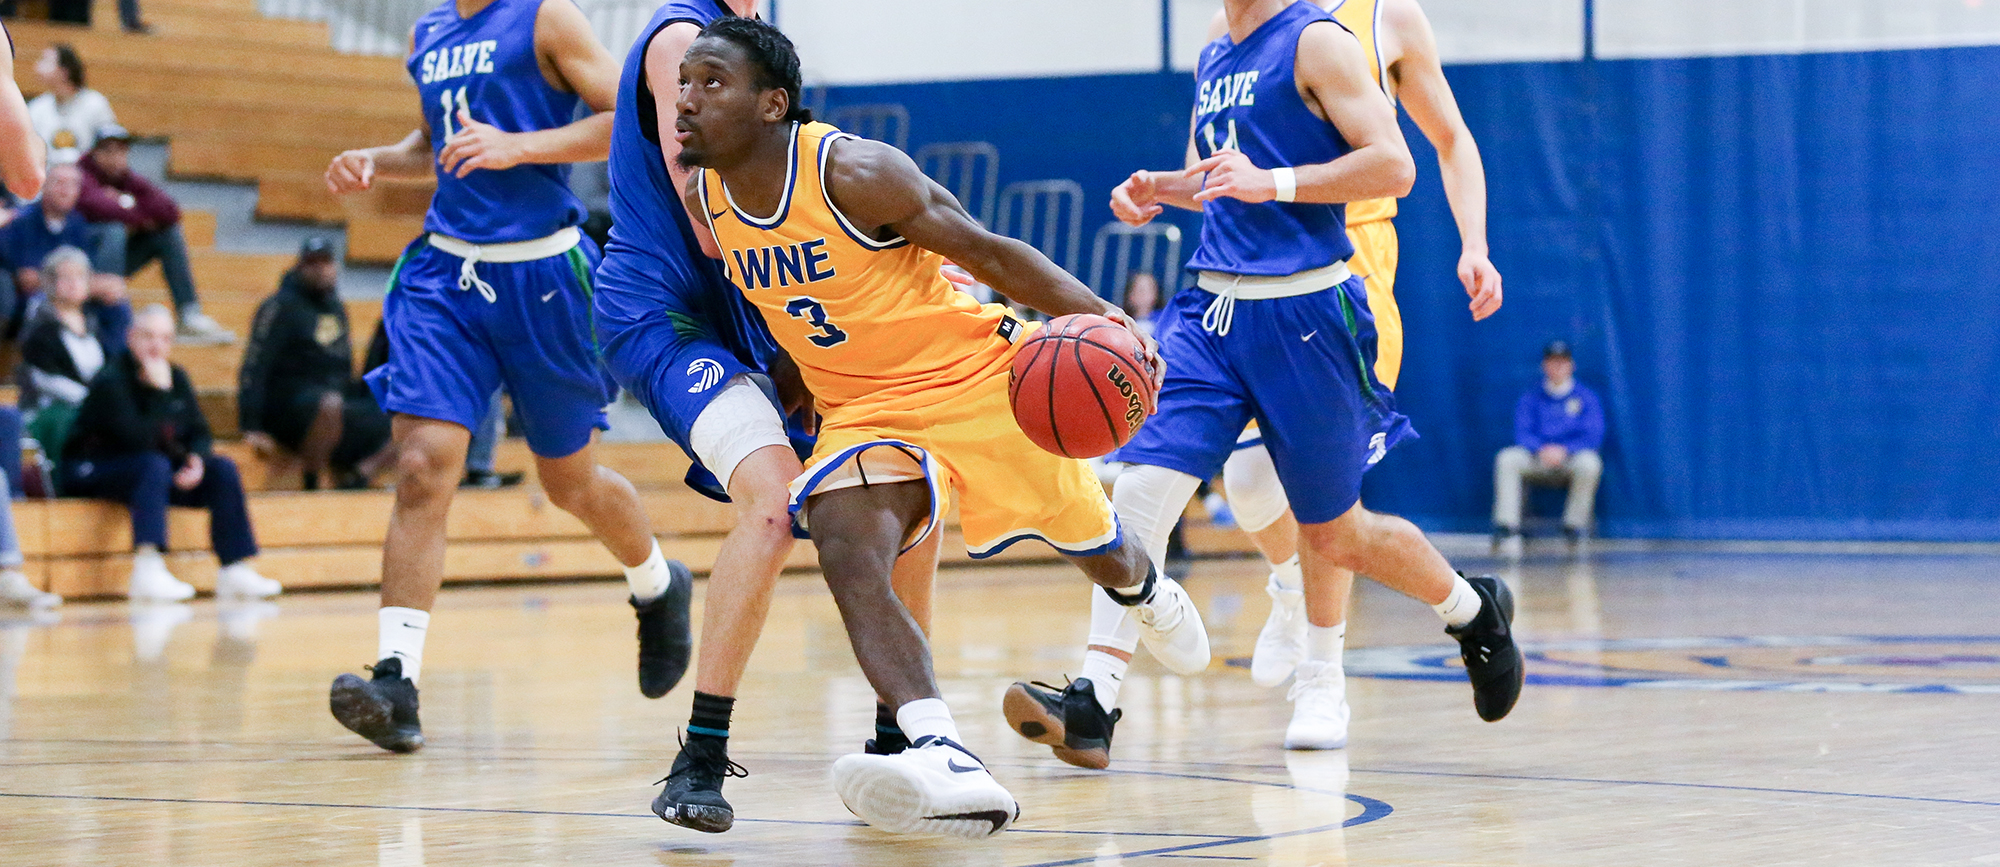 Junior Mikey Pettway scored a game-high 24 points on Tuesday night as Western New England picked up its first CCC win at Eastern Nazarene (photo by Chris Marion).